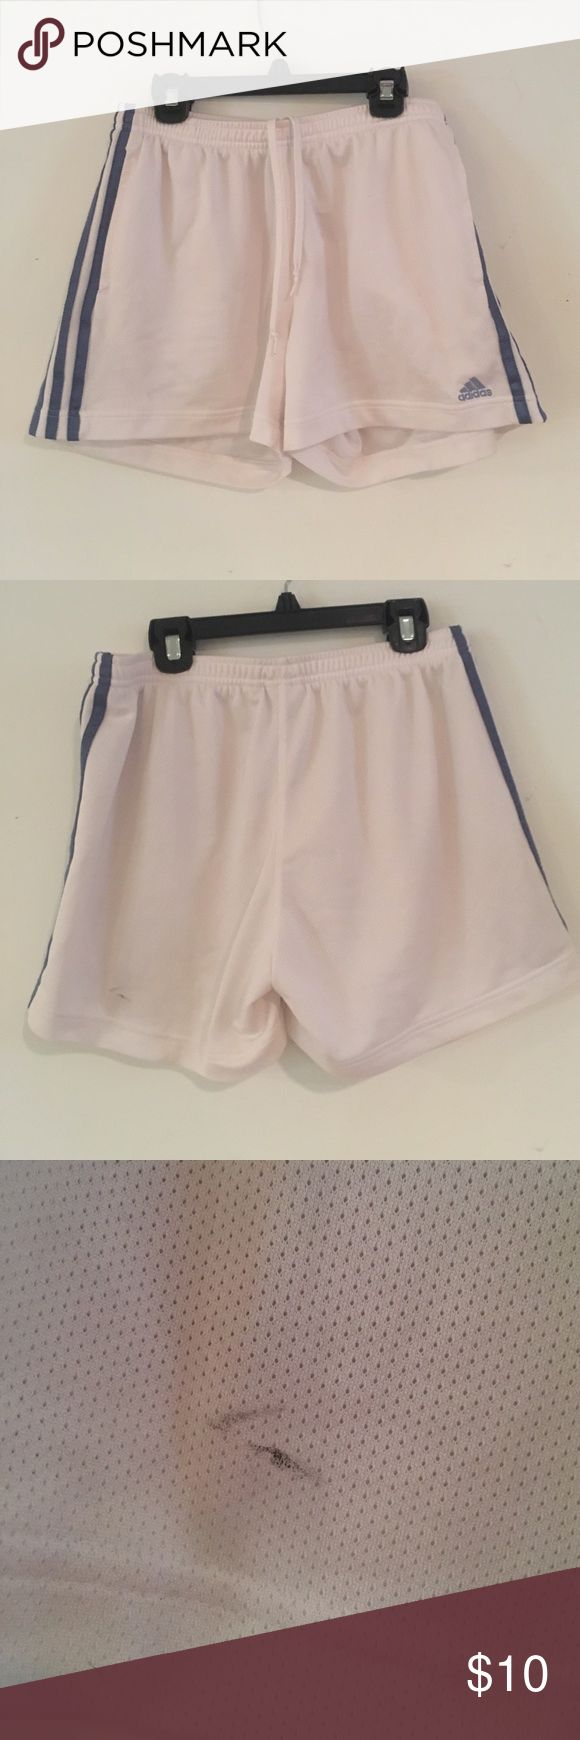 Adidas soccer shorts size m White with nautical blue adidas lines. Size m. In well loved condition. Has a little black eyeliner on the back of the left side. Perfect condition besides for that. Does not have inside liner. Adidas Shorts